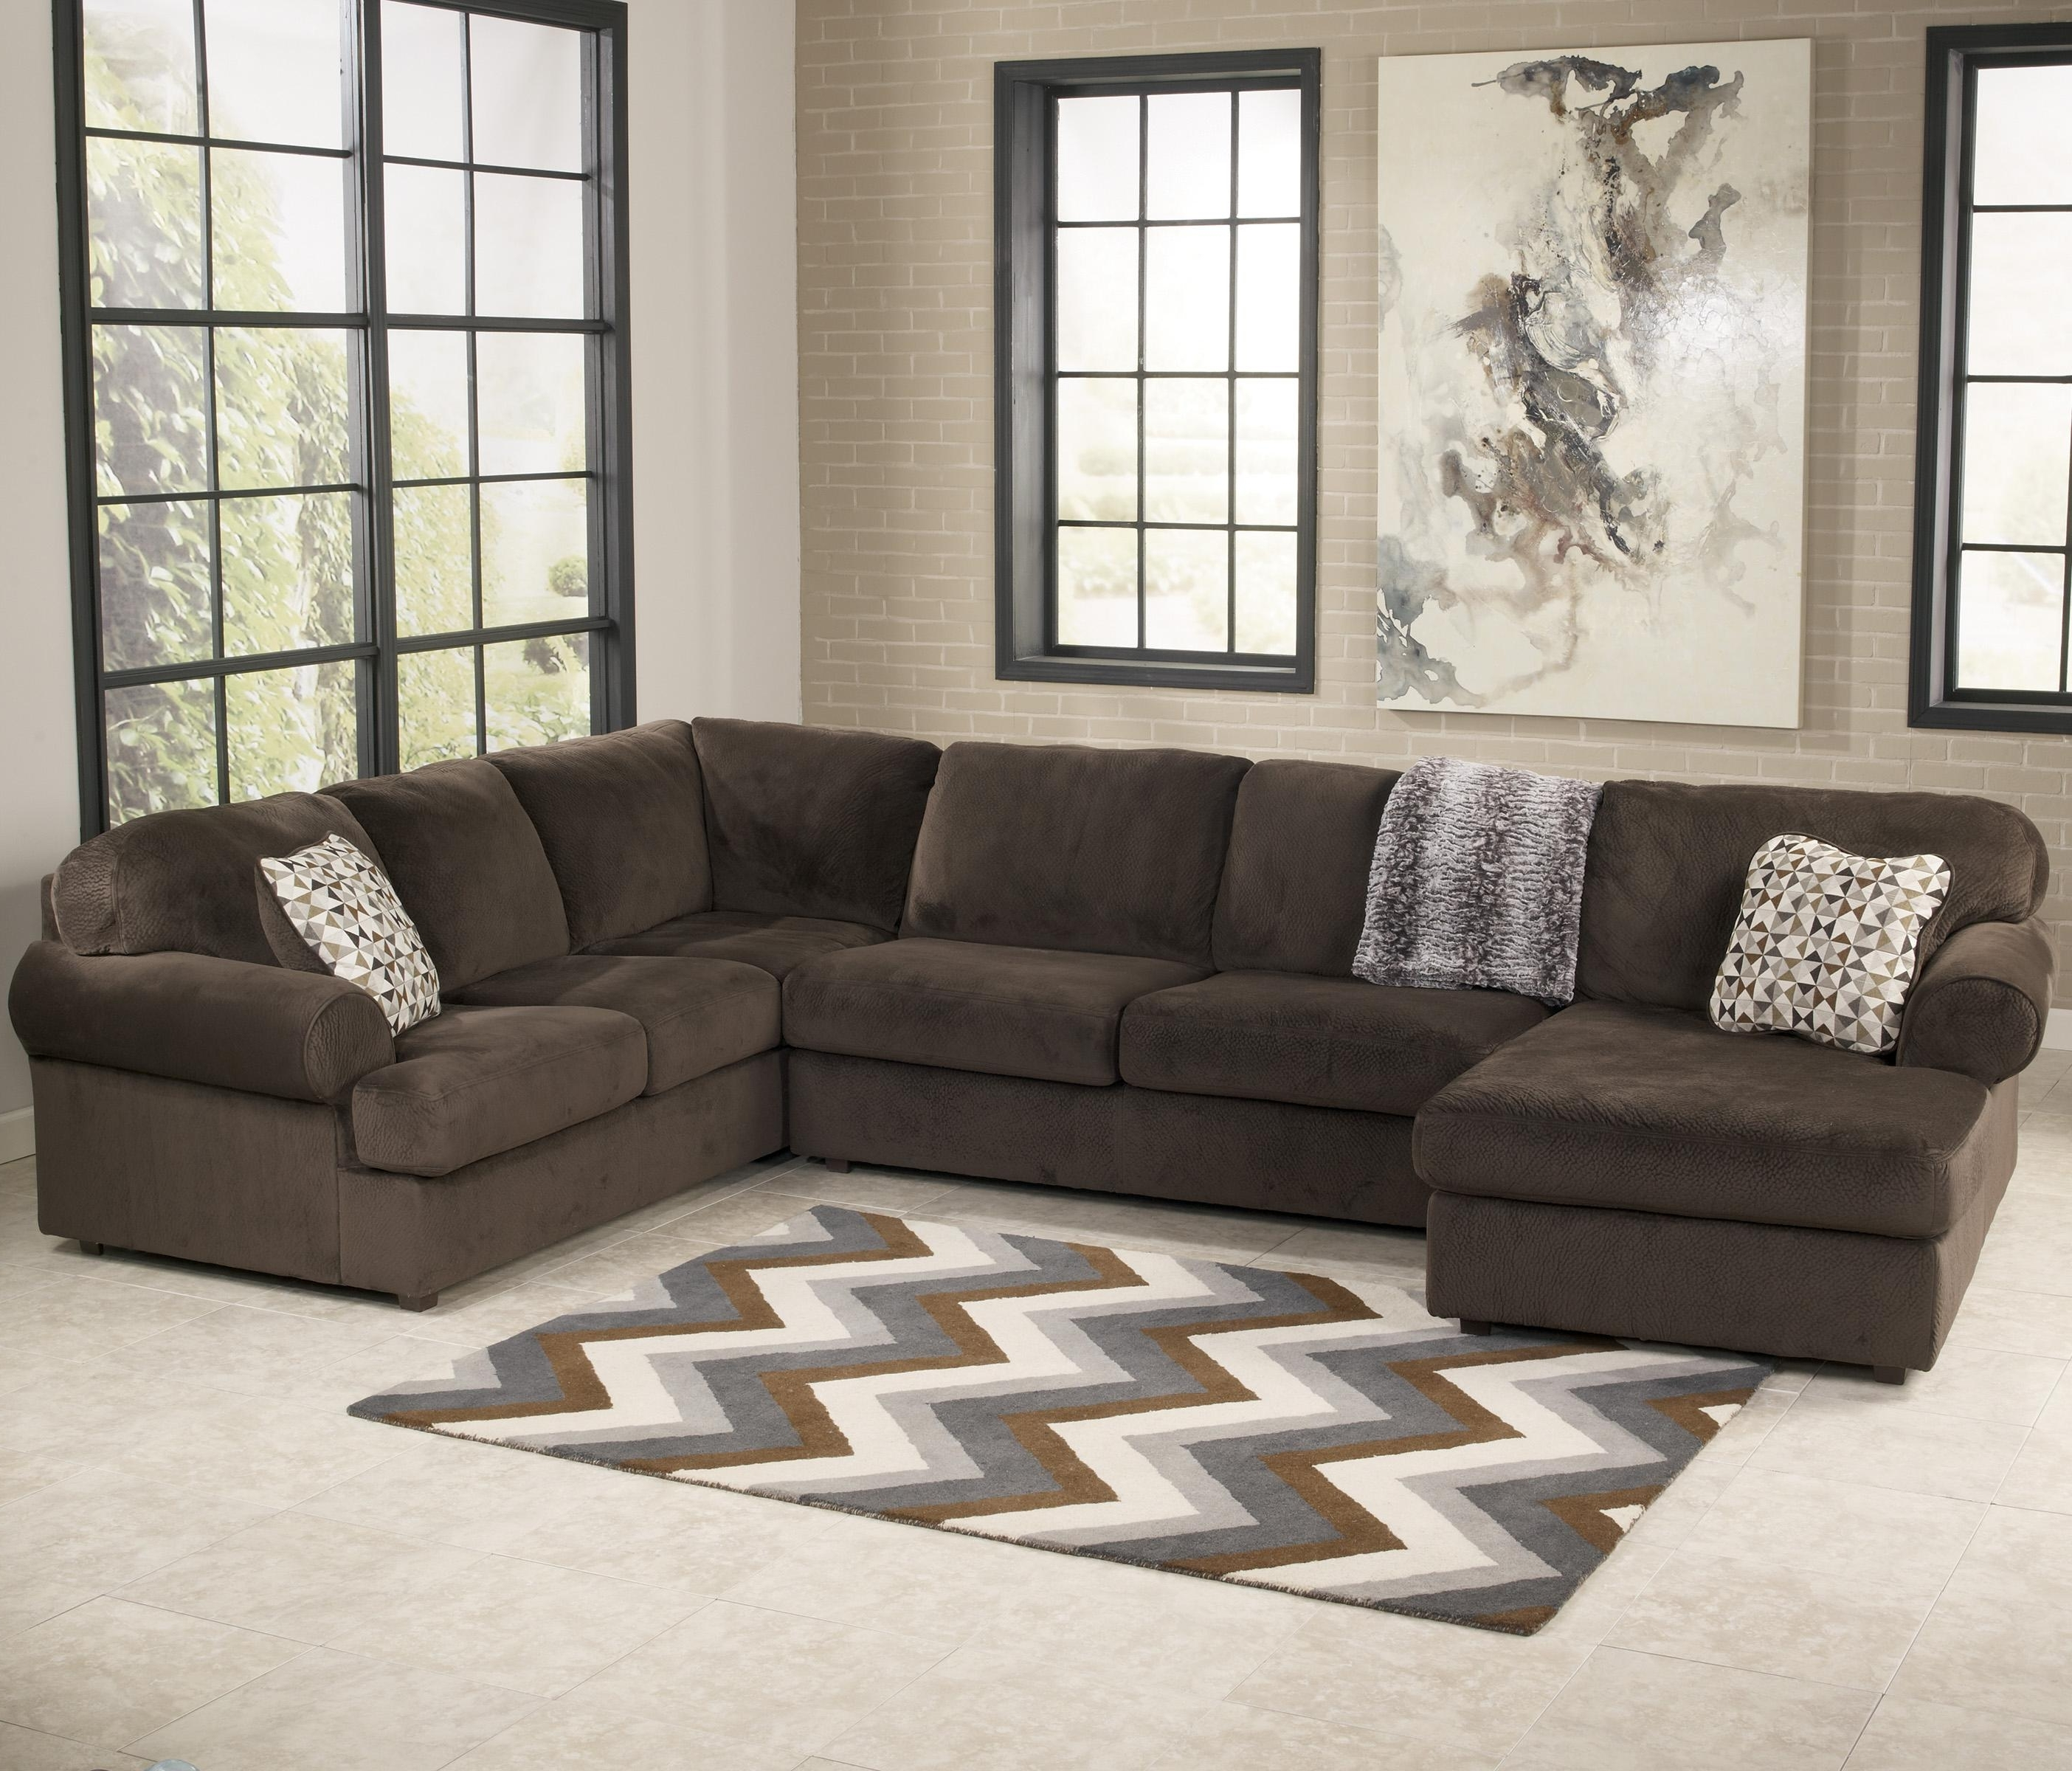 Signature Designashley Jessa Place – Chocolate Casual With Favorite Ashley Furniture Sectionals With Chaise (View 2 of 15)